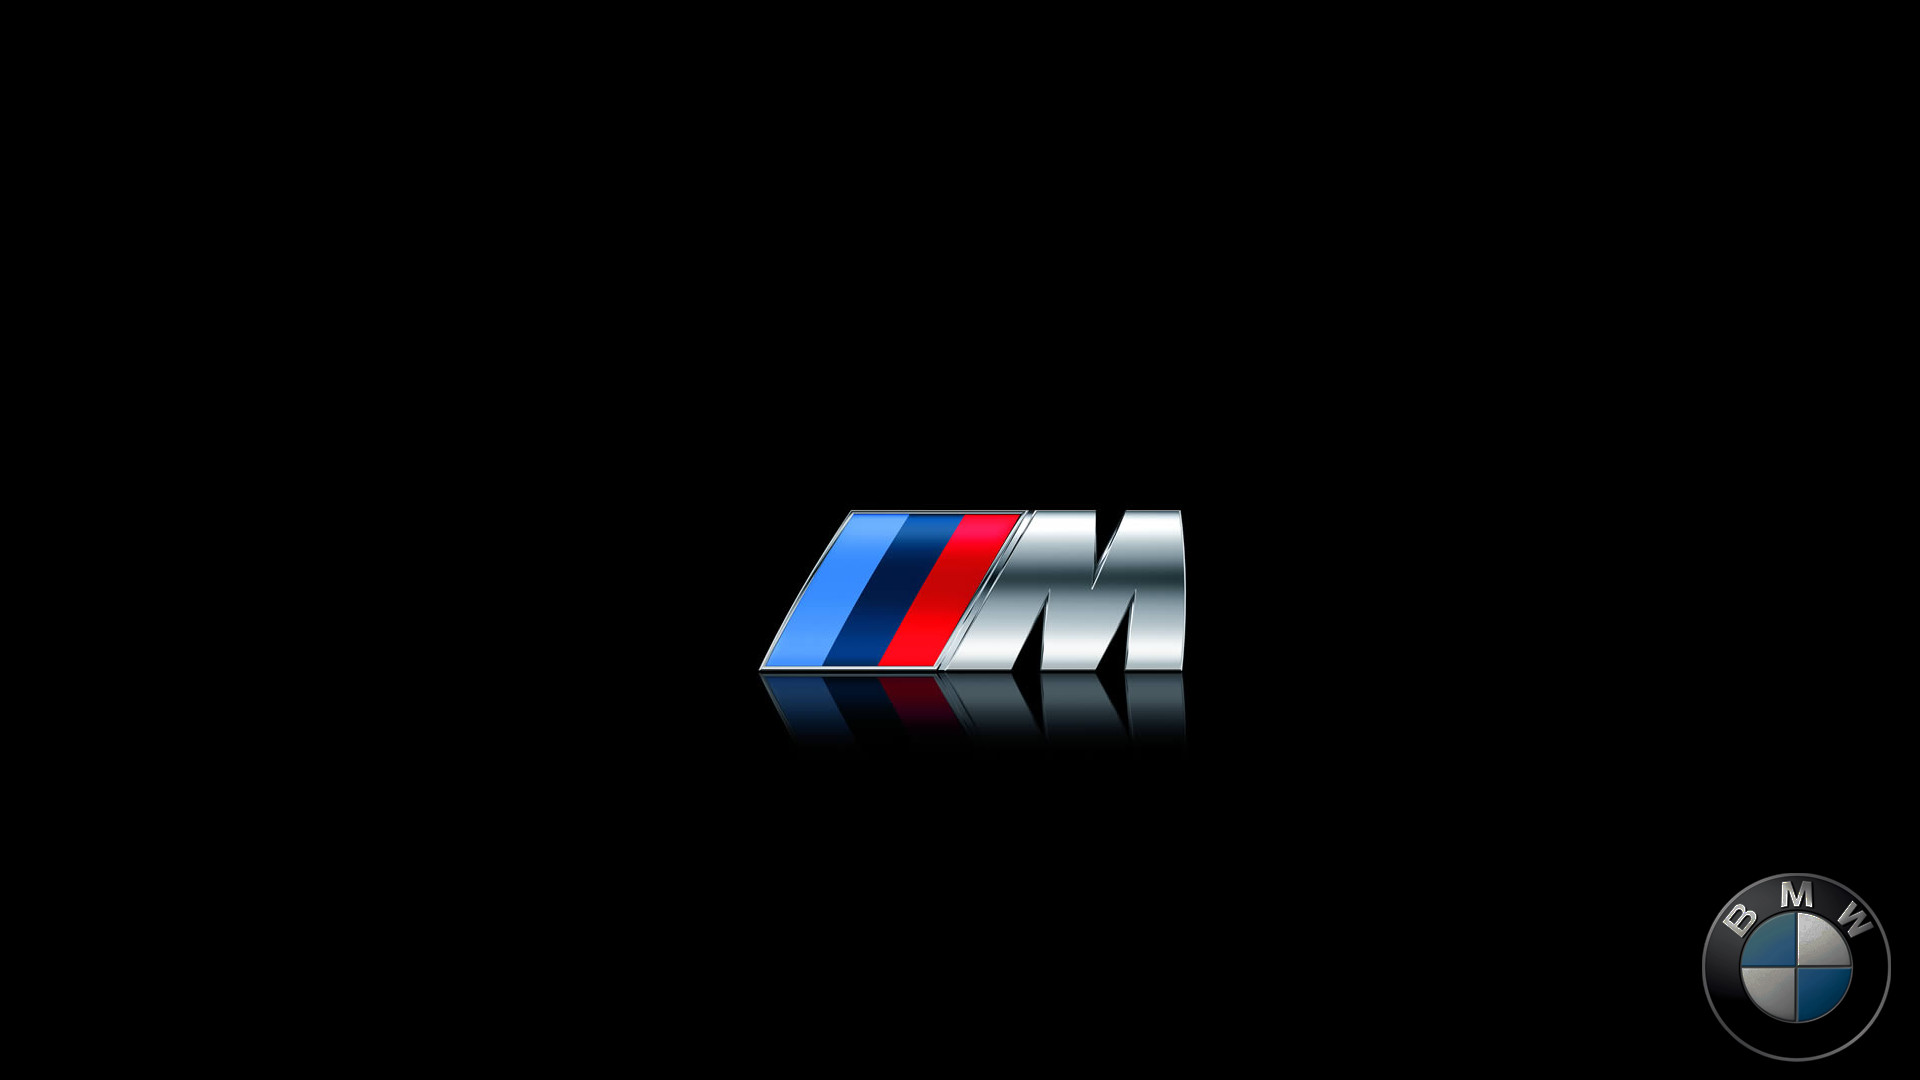 1920x1080 Bmw M Logo Wallpapers - Wallpaper Cave